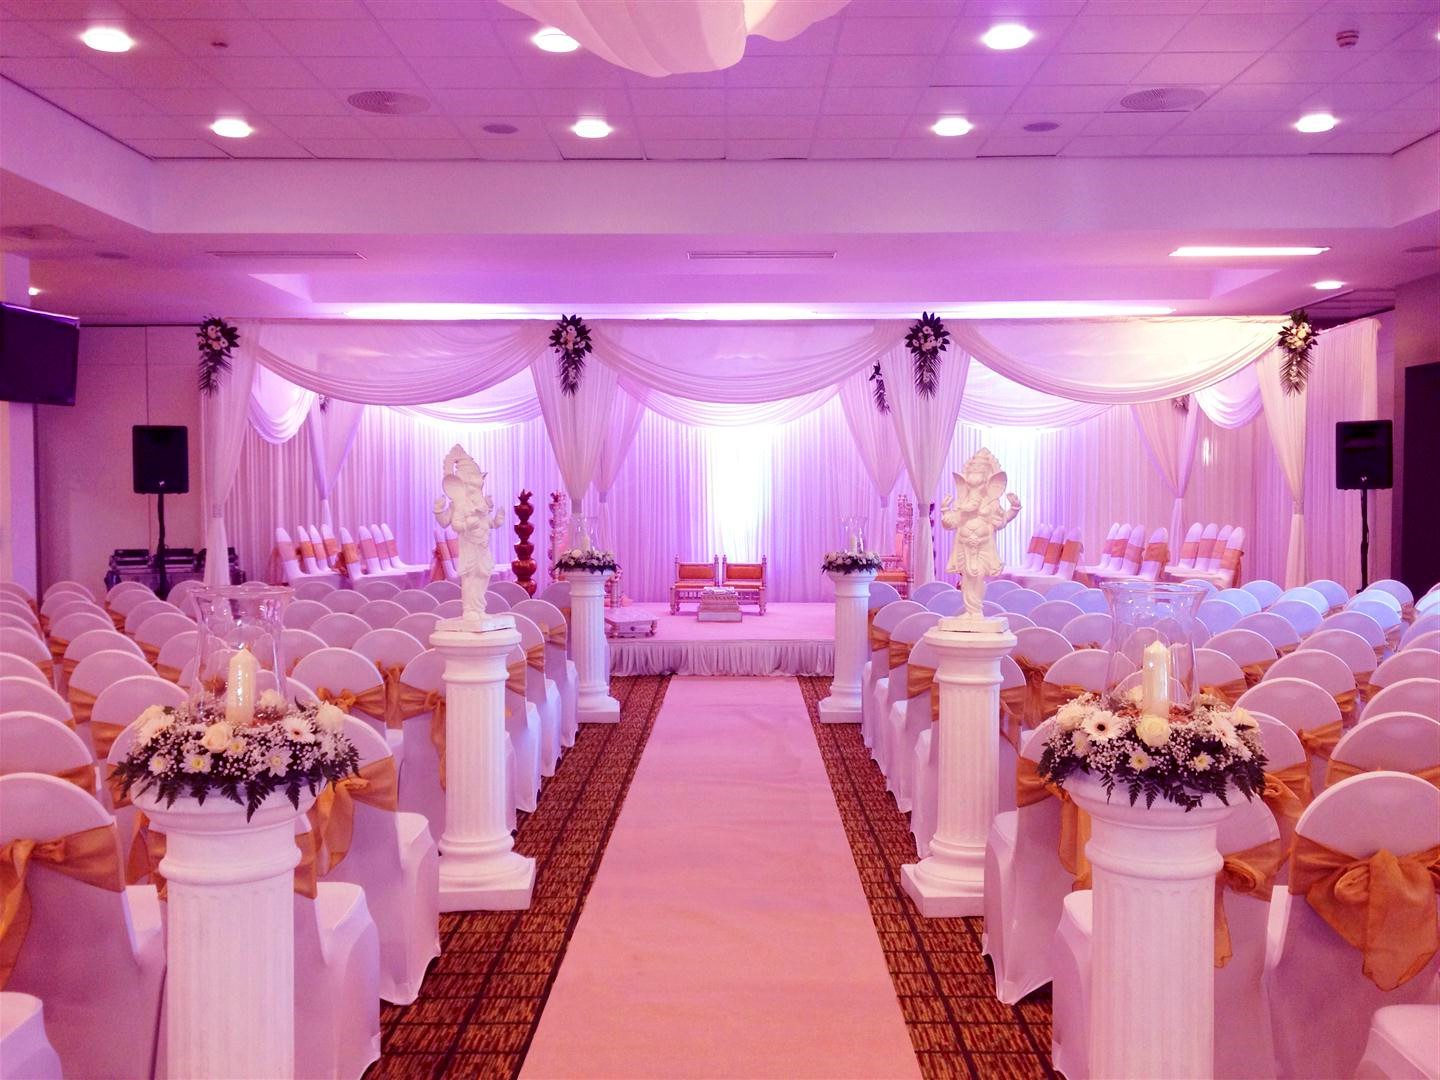 Marvelous Purple Wedding Decoration - All About Wedding